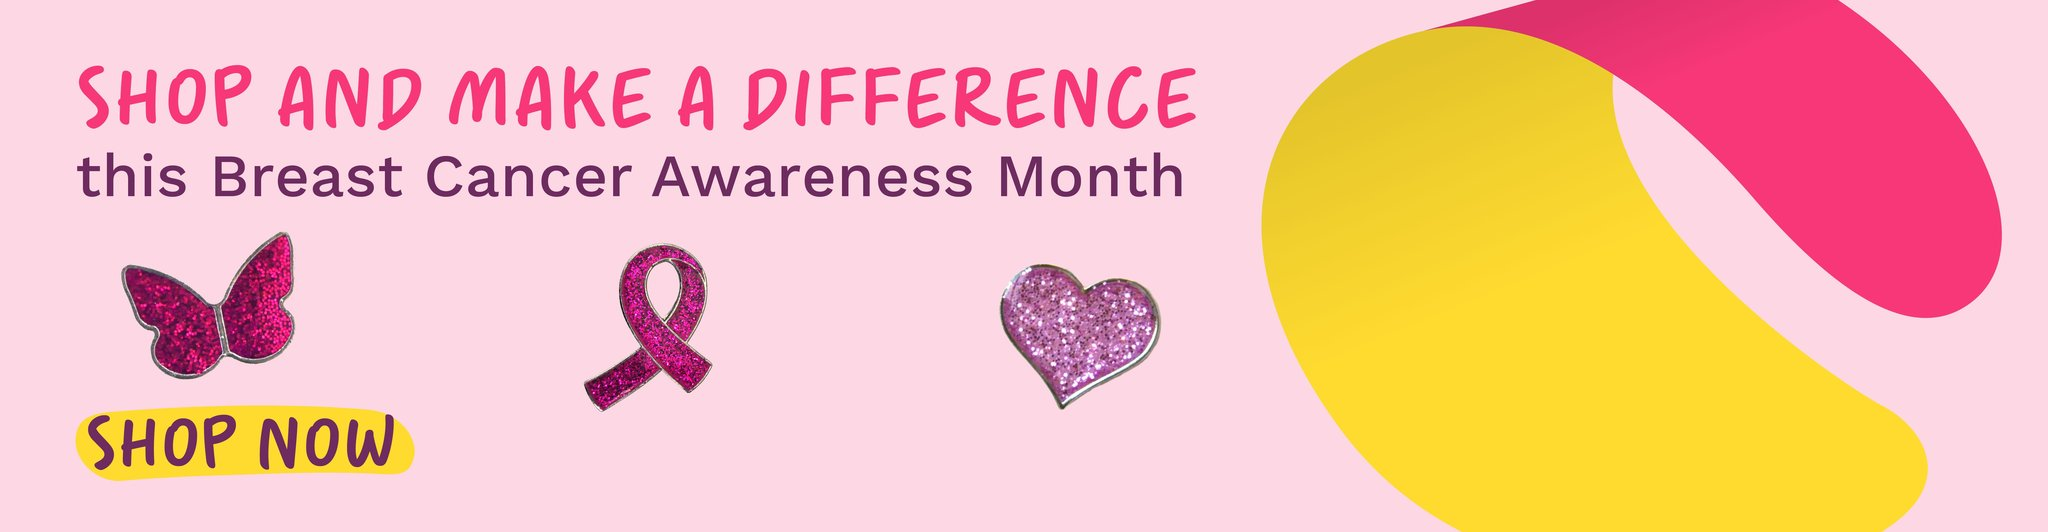 Shop and make a difference this Breast Cancer Awareness Month